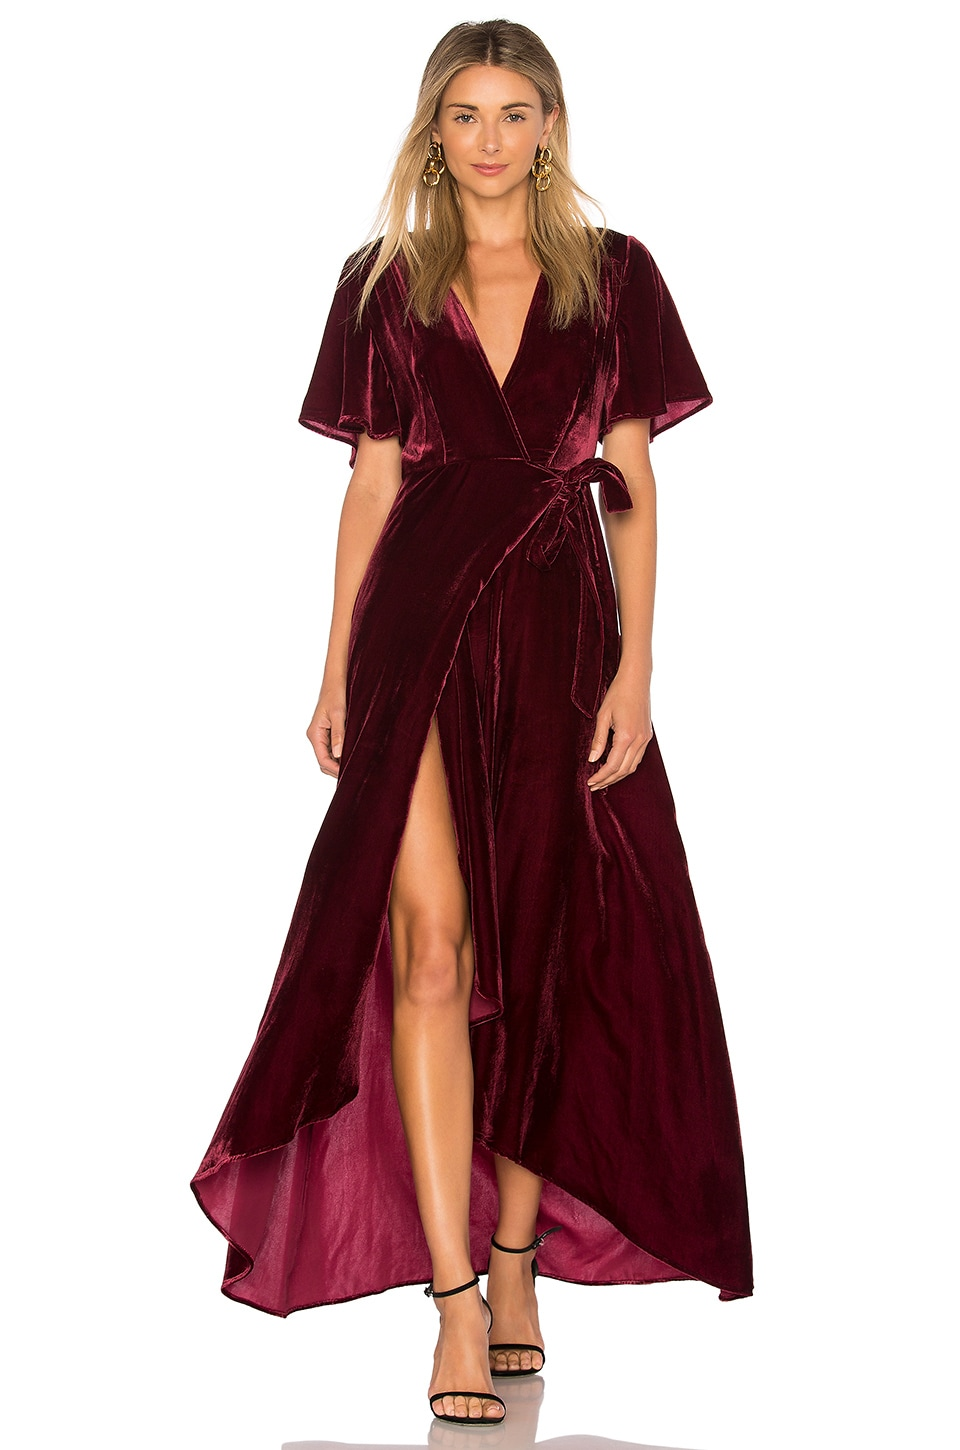 Privacy Please Krause Dress in Burgundy